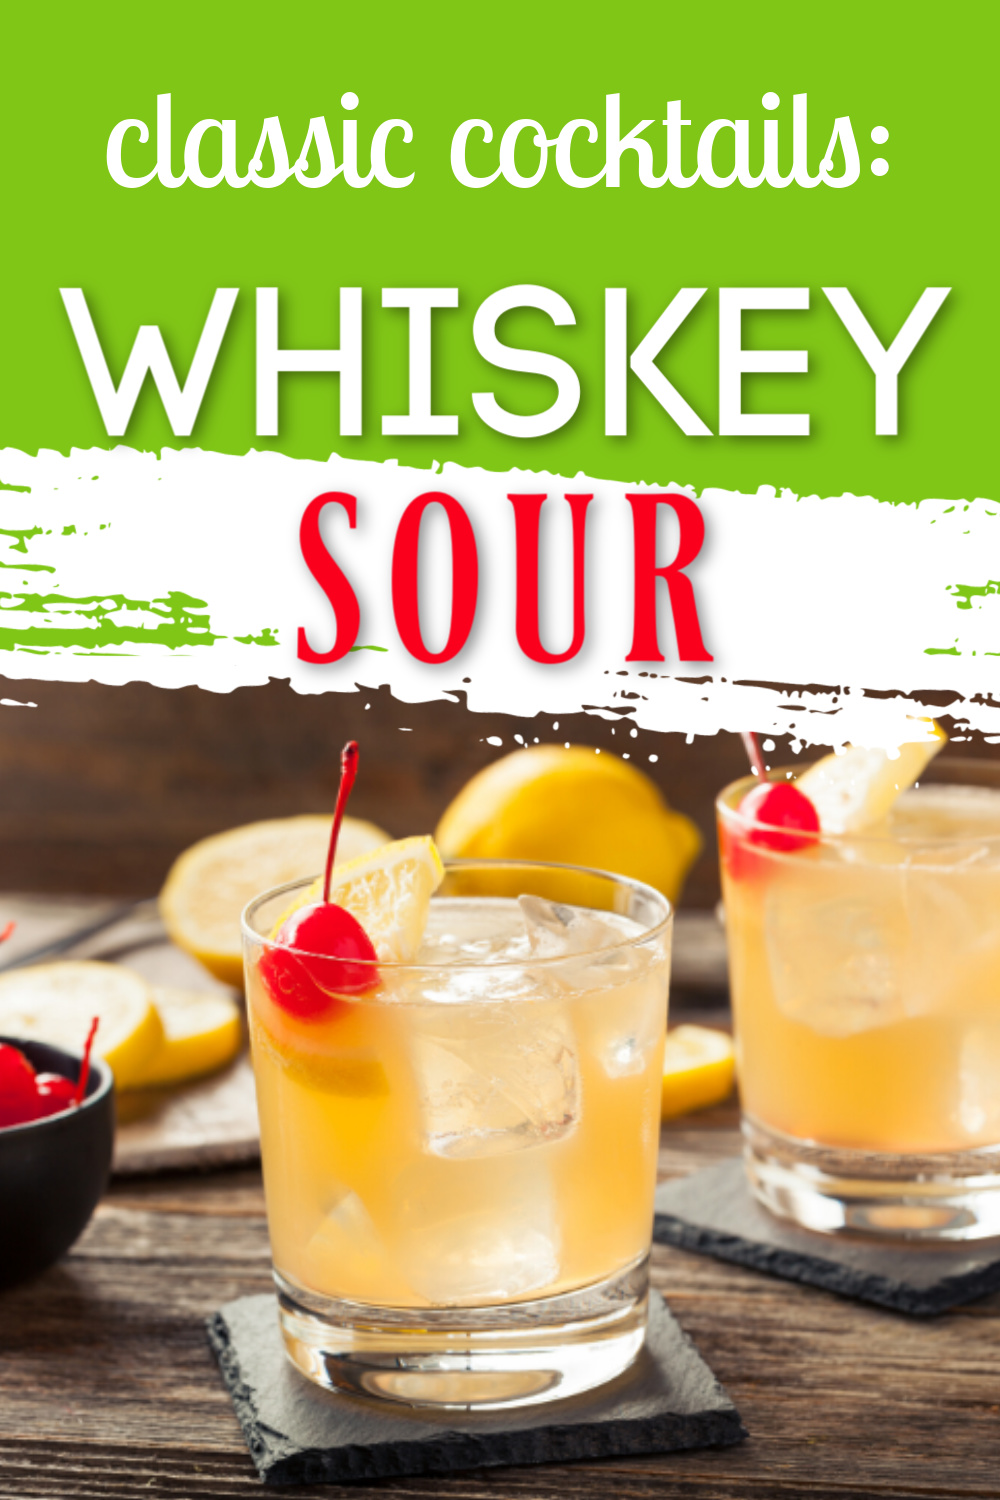 Whiskey Cocktails The Whiskey Sour Recipe Cocktail Recipes Easy Whiskey Sour Whiskey Cocktails